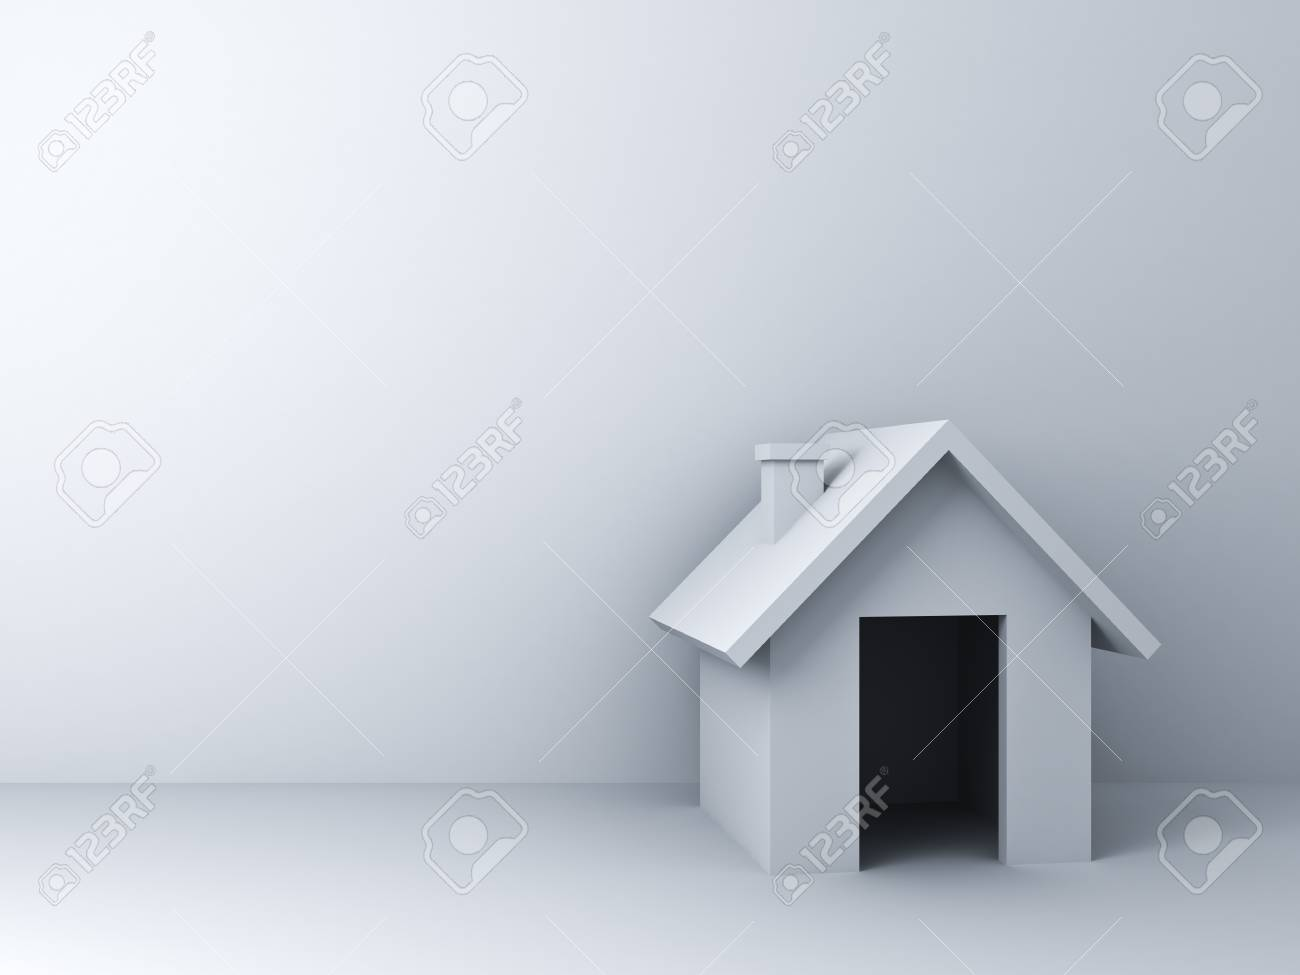 3d Simple House Model Over White Wall Background With Empty Space